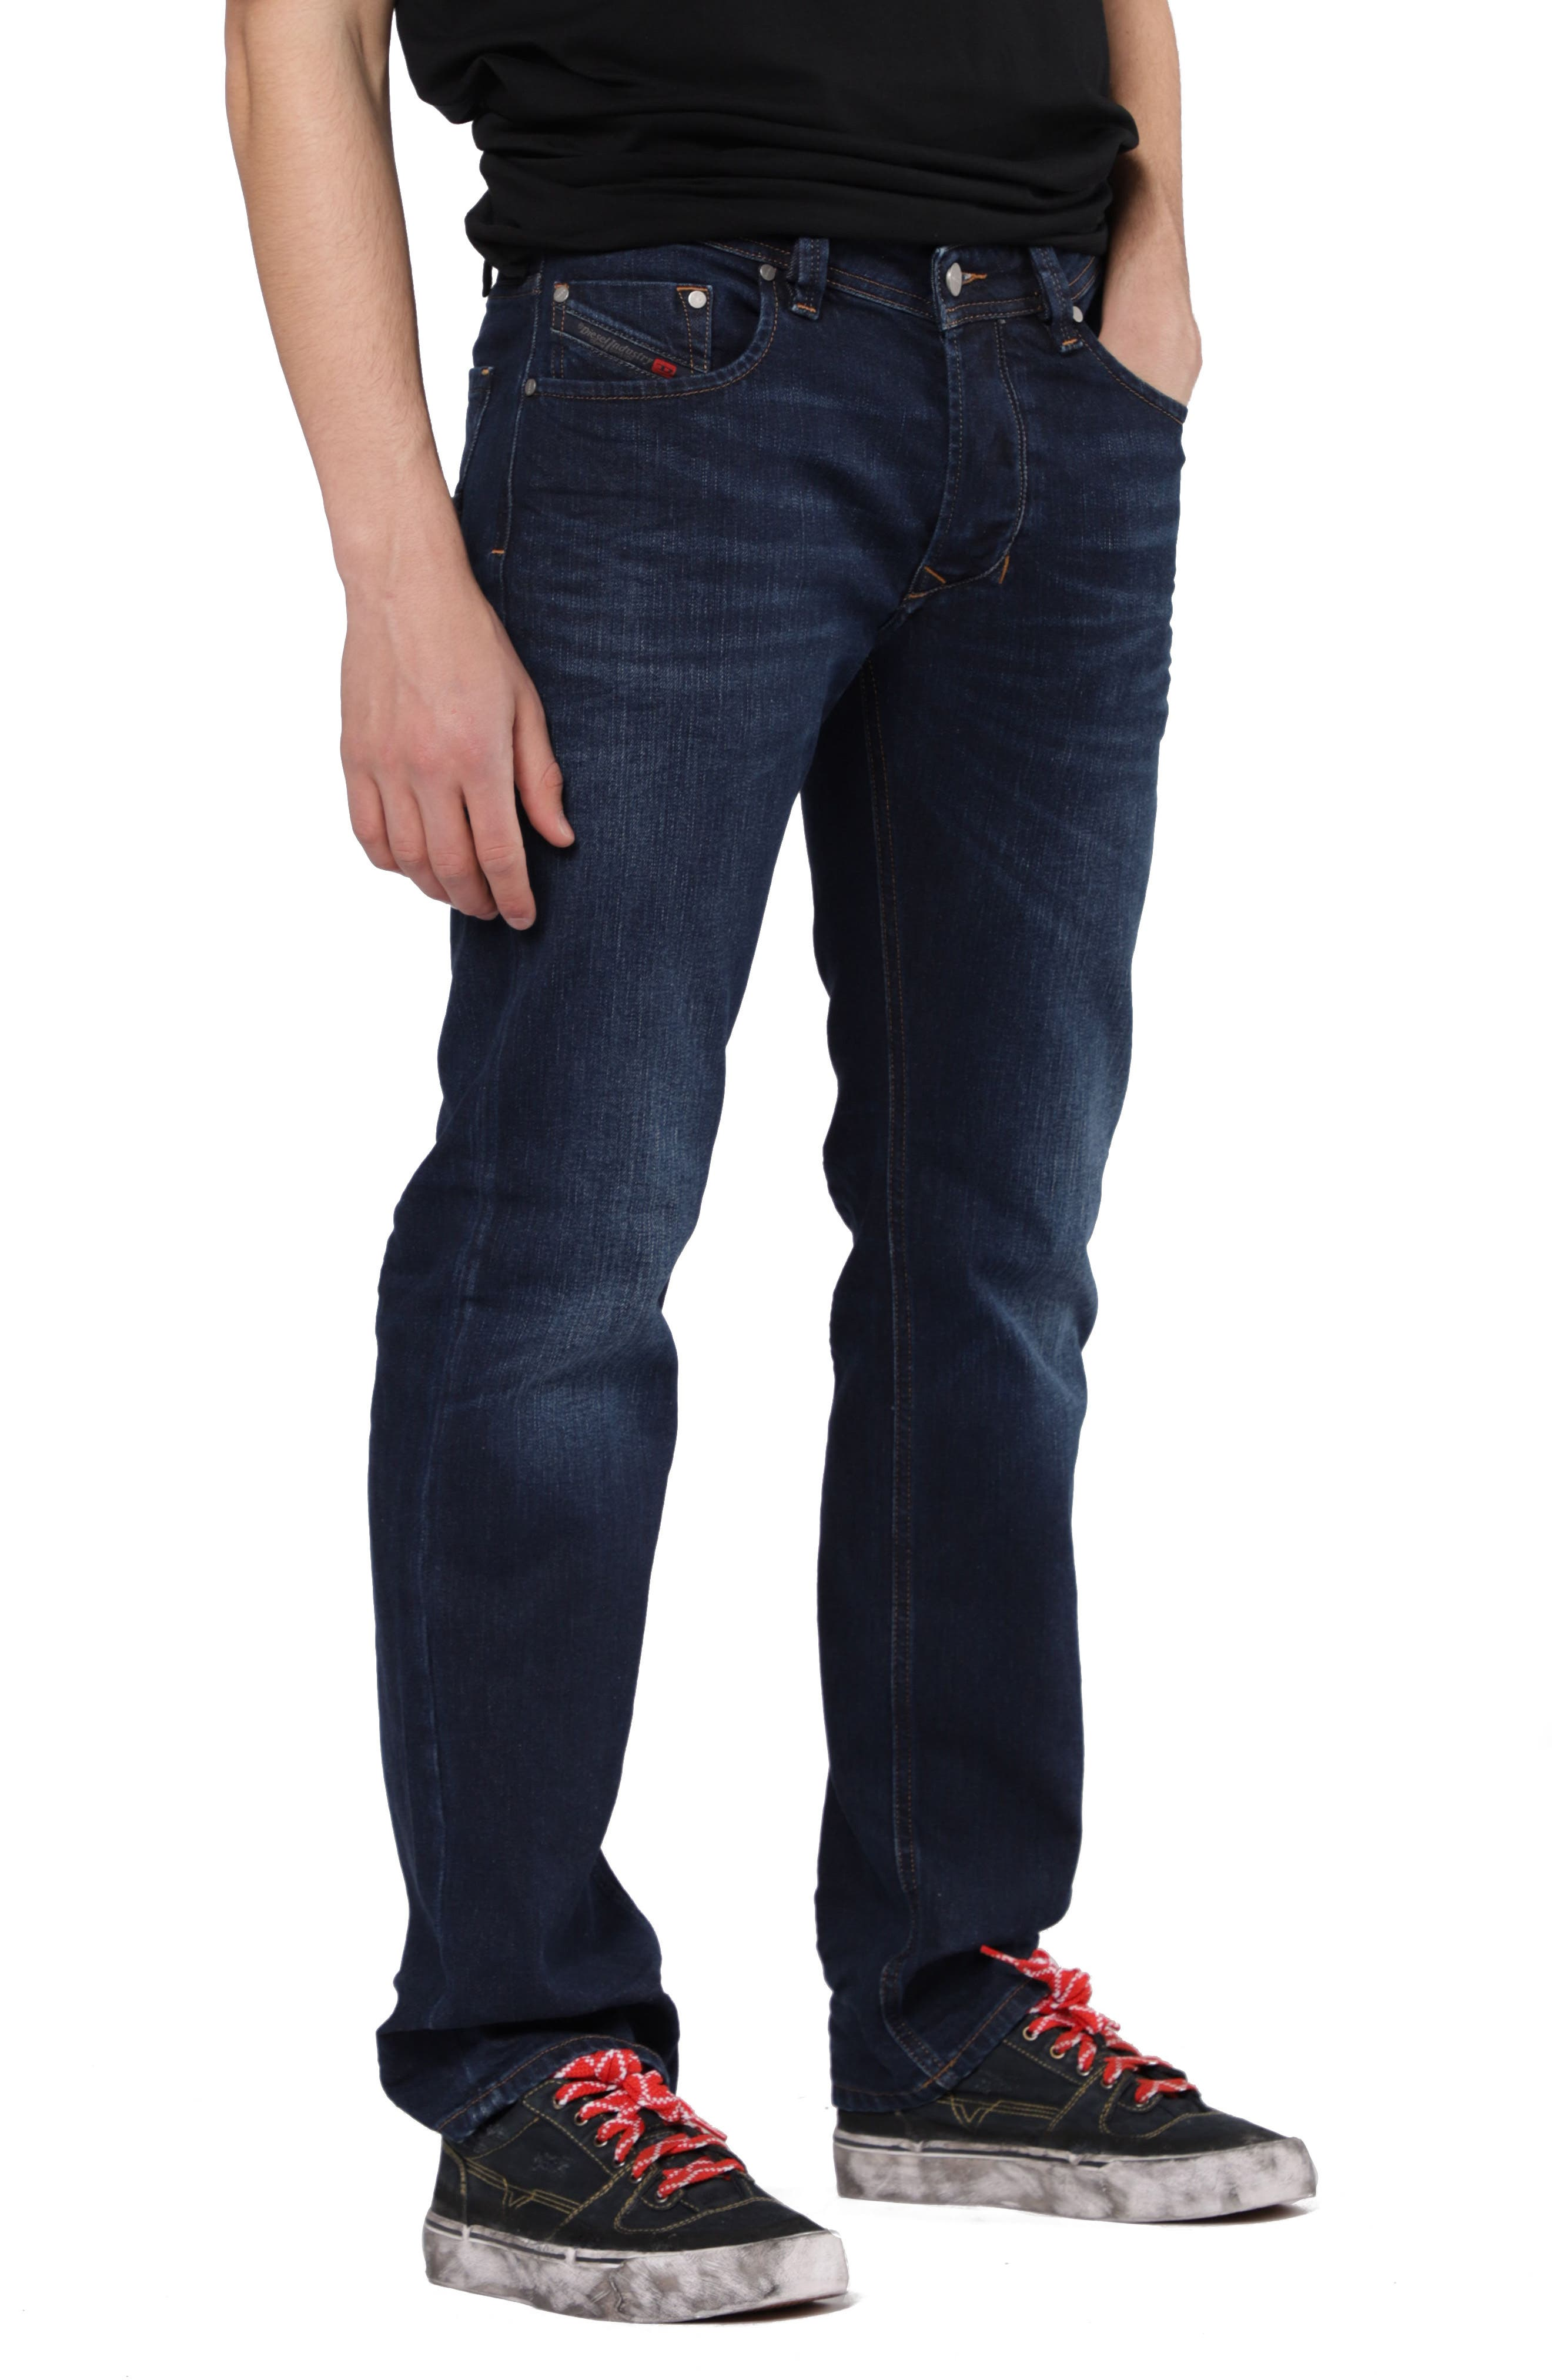 Larkee Relaxed Fit Jeans,                             Alternate thumbnail 3, color,                             084VG